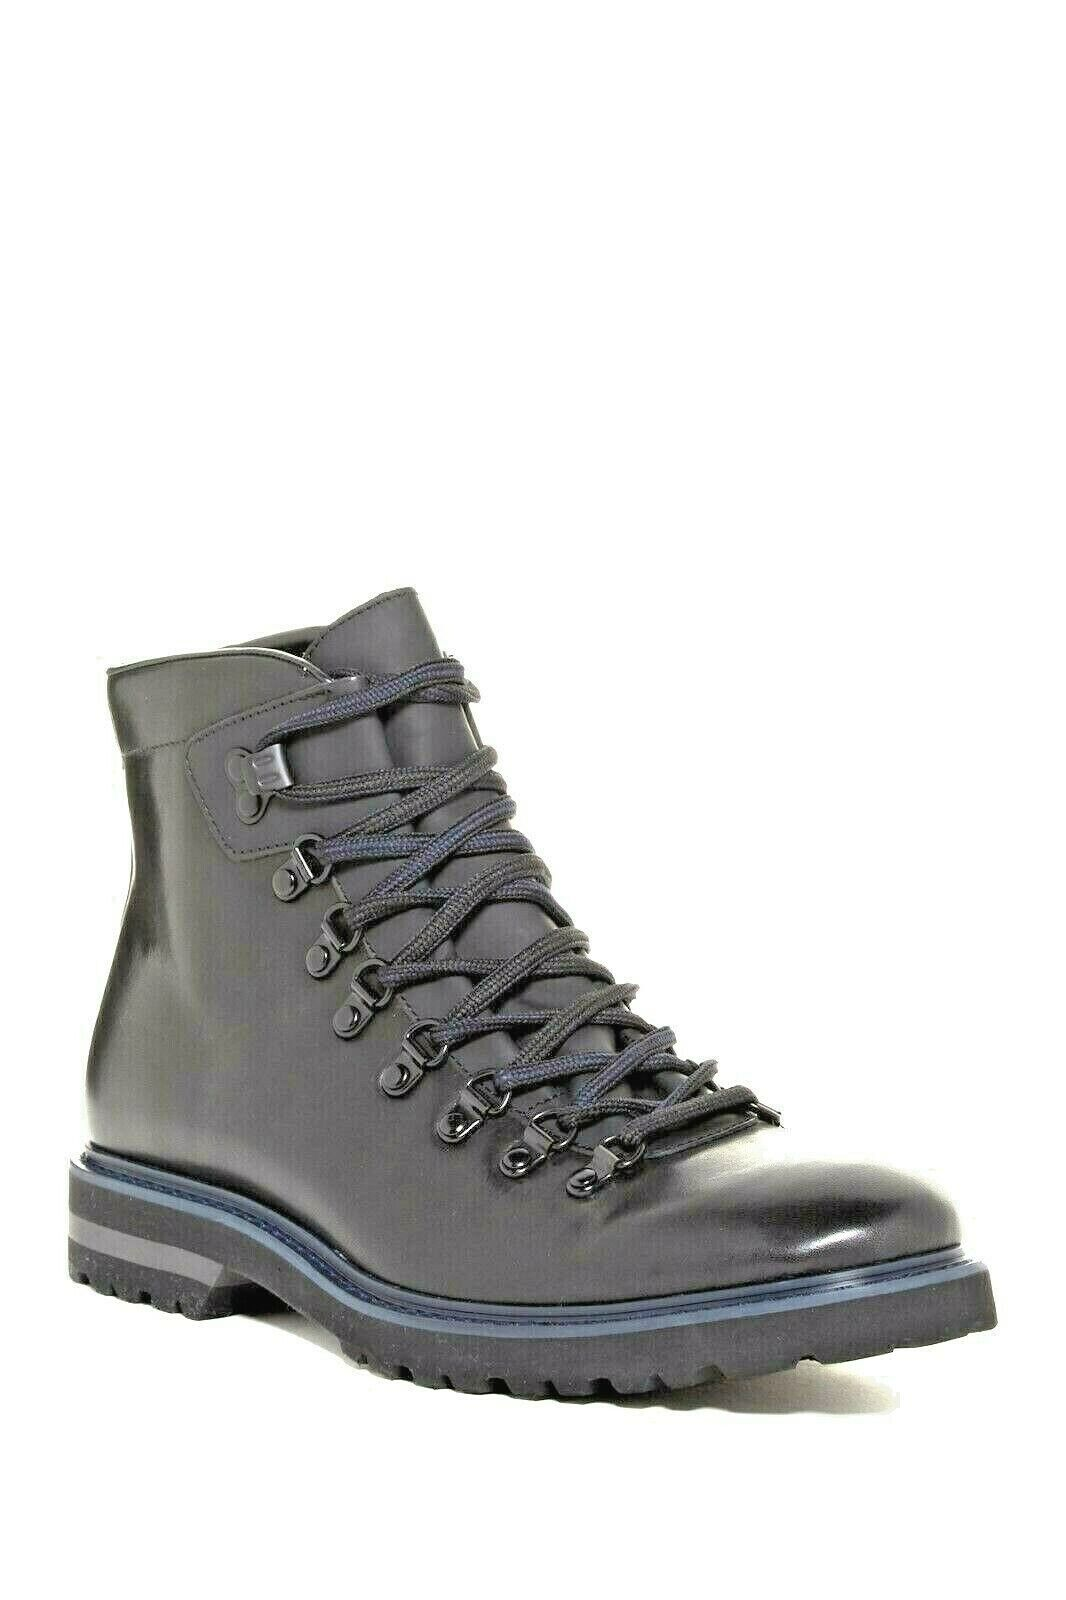 Kenneth Cole NY Men's Click Magnet US 12 M Cole Black Leather Hiking Boots